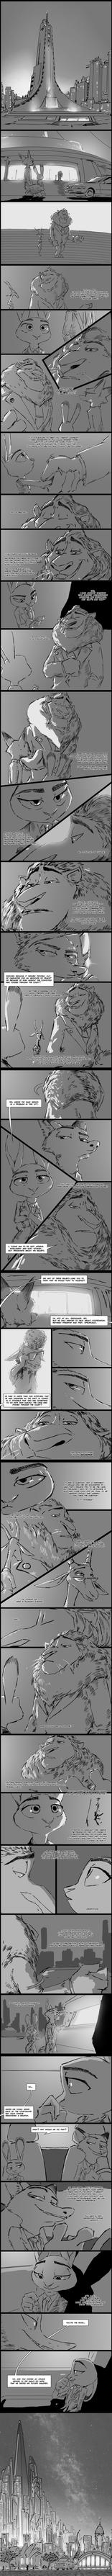 Sunderance - Chapter 8: King of Pride Rock by TheWyvernsWeaver